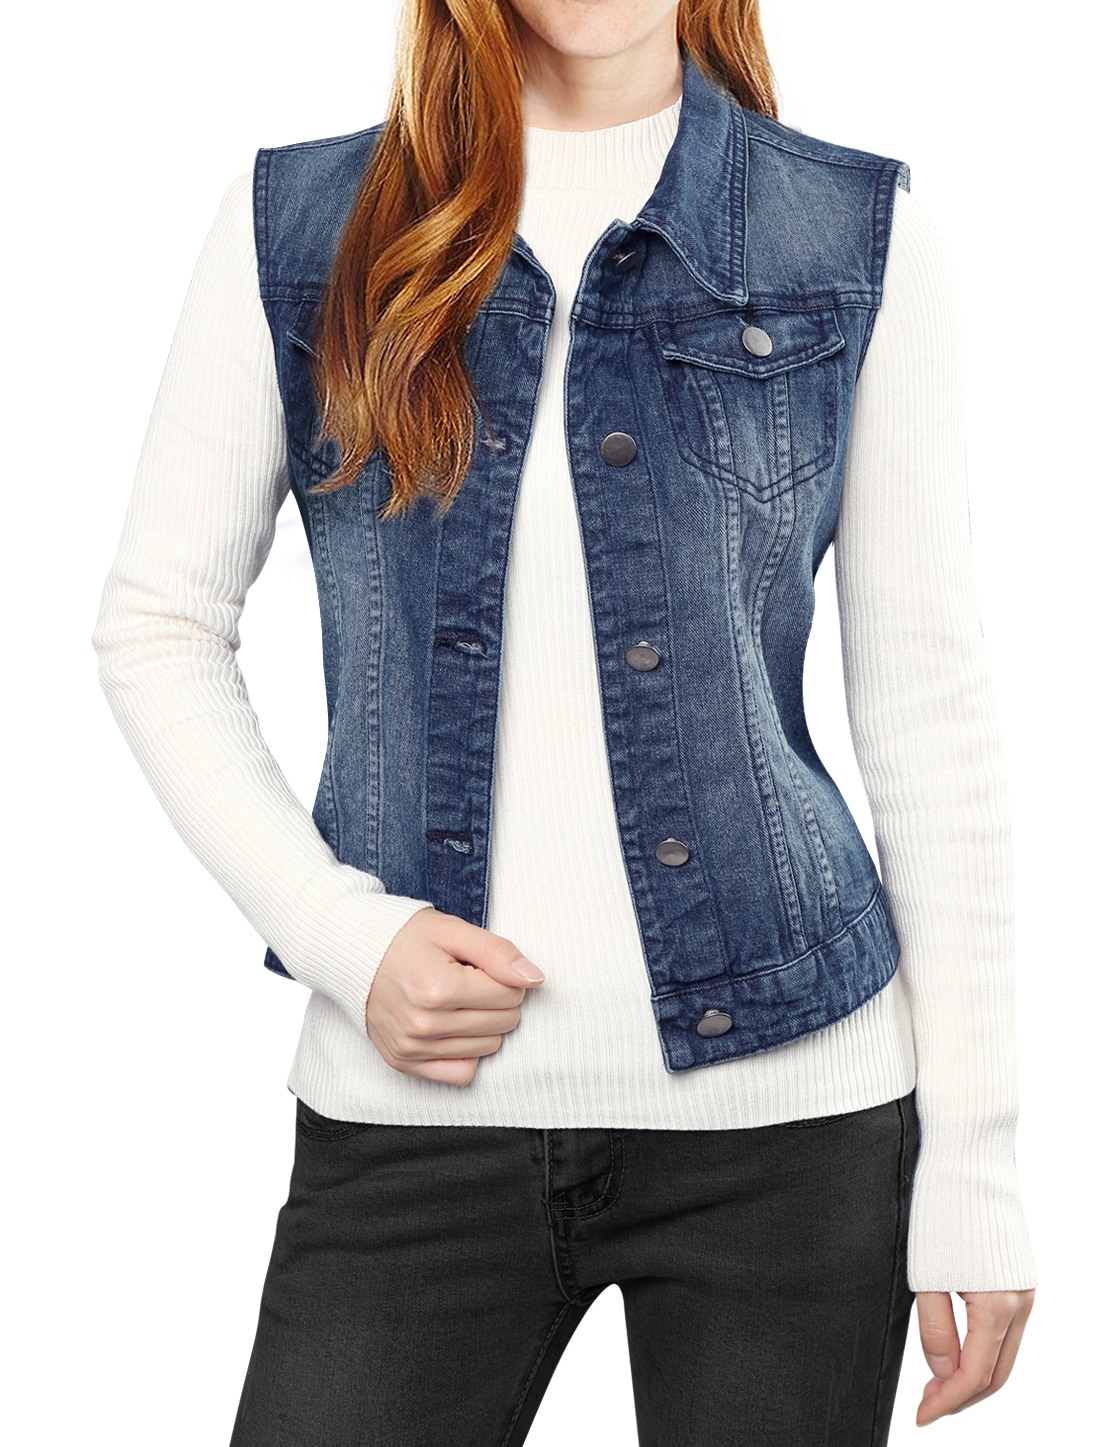 Ladies Buttoned Washed Denim Vest w Flap Pockets Dark Blue S